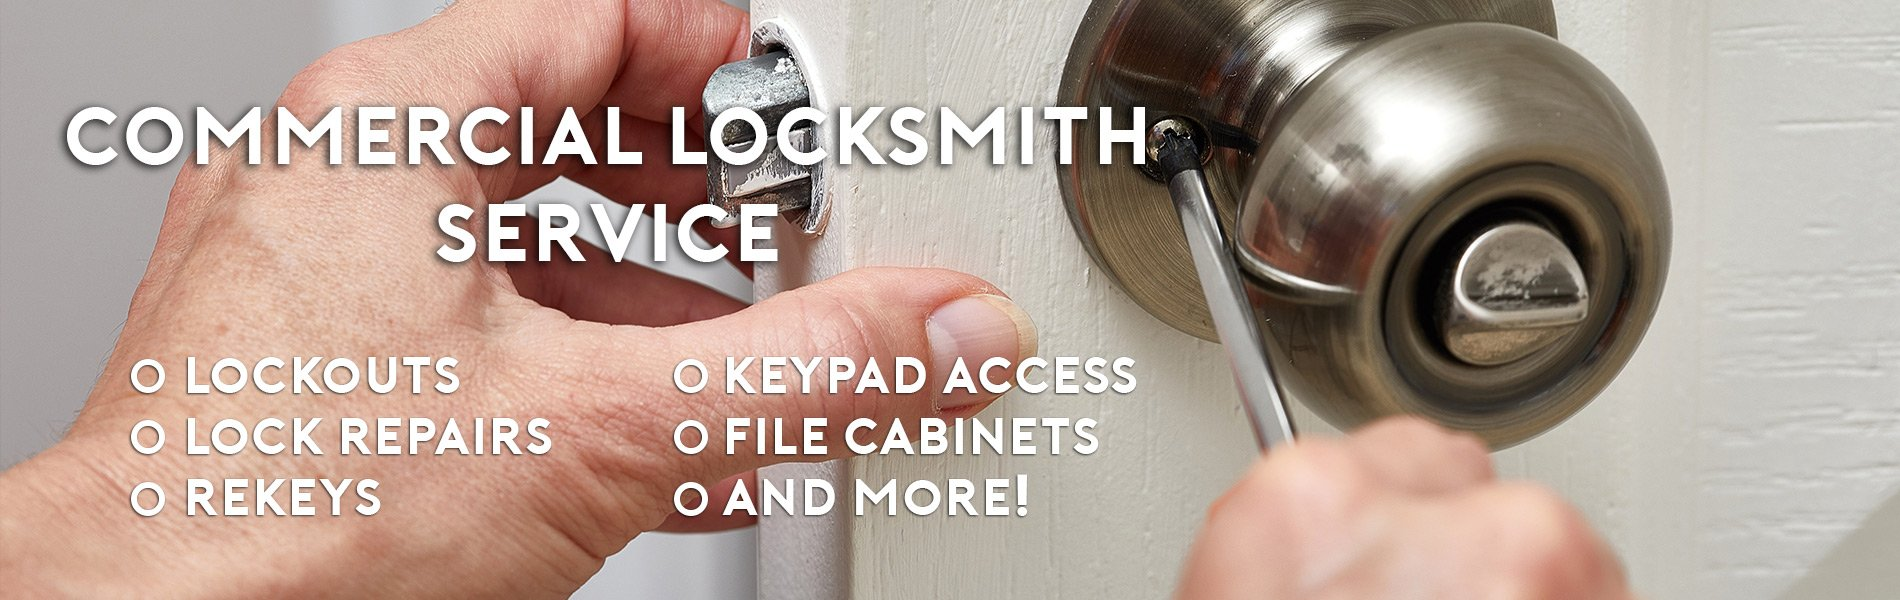 City Locksmith Shop  (866) 245-6554